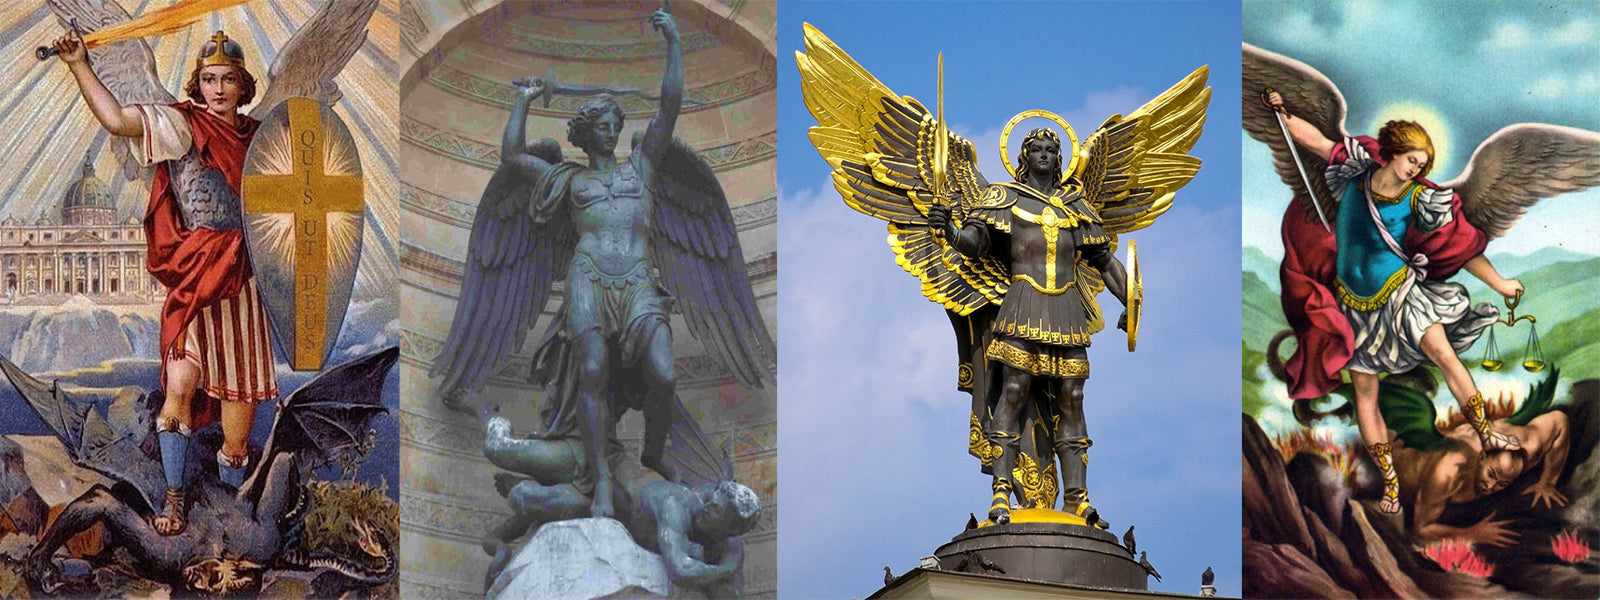 The Cult of Saint Michael